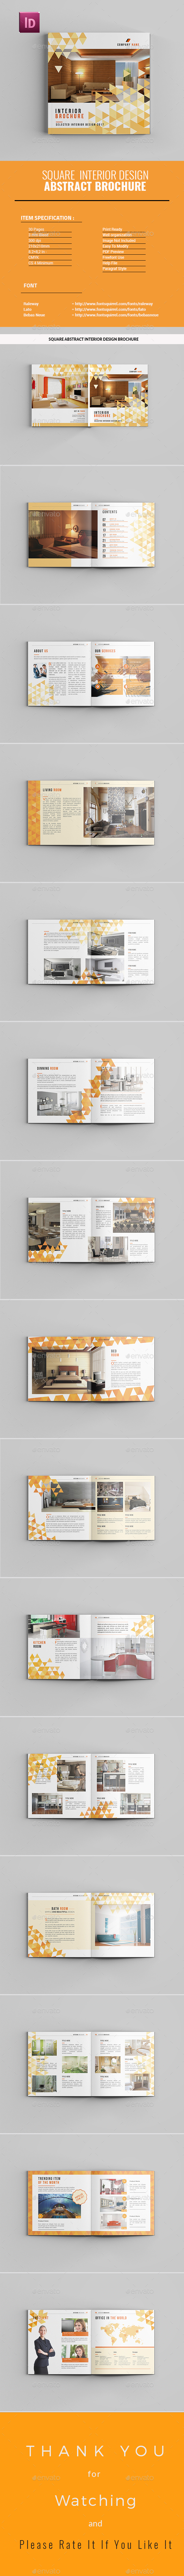 Square Abstract Interior Design Brochure - Catalogs Brochures